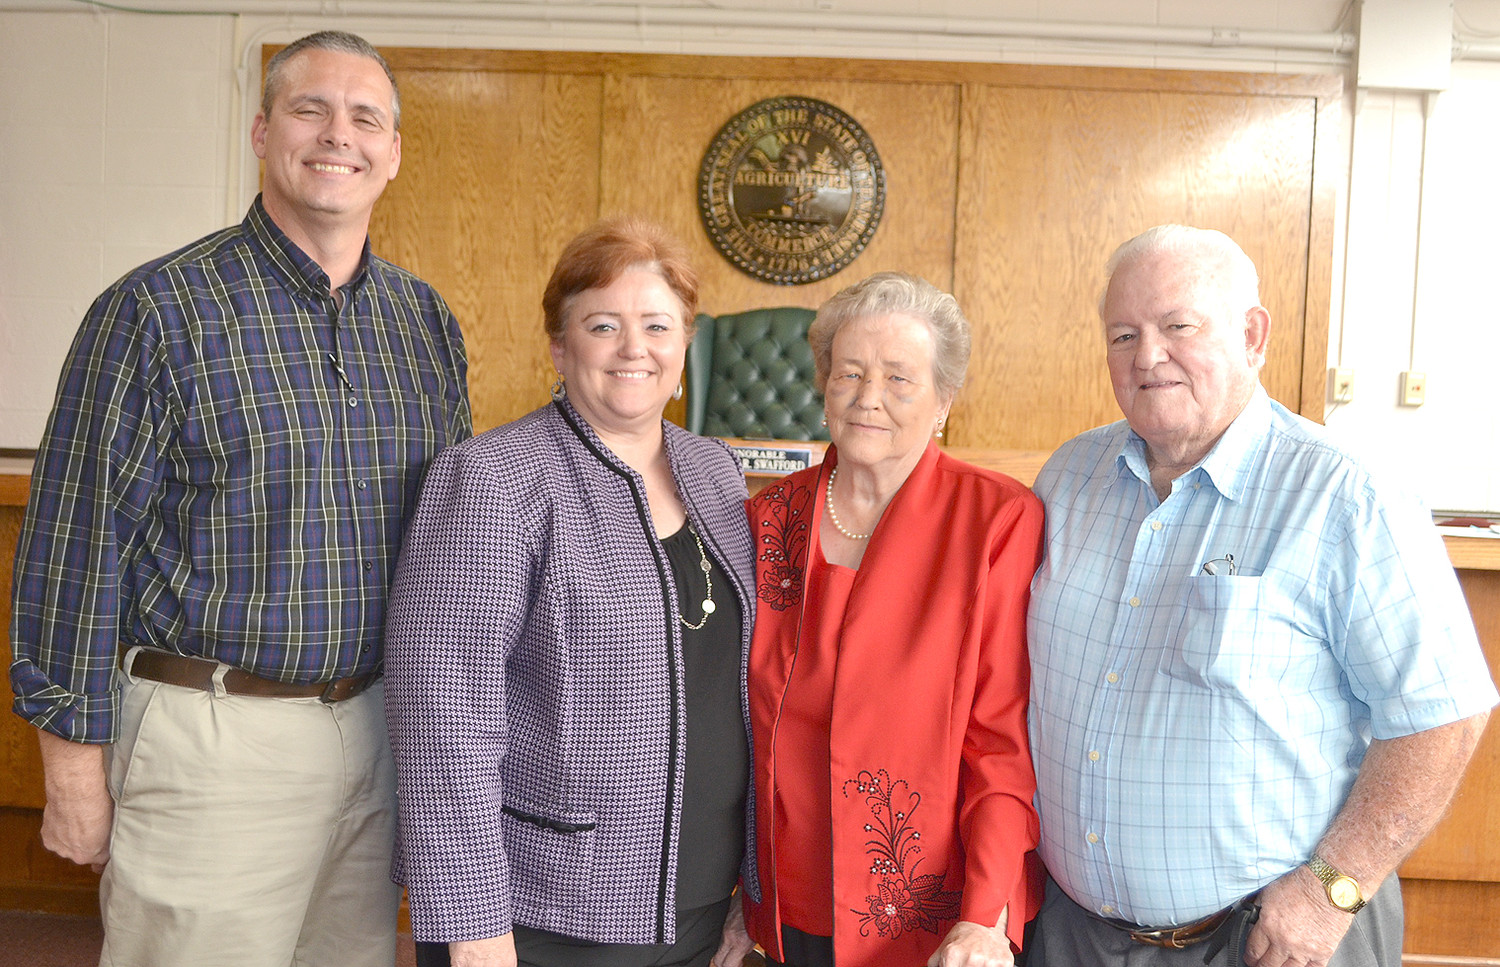 VICKIE TOWNE was sworn-in as the new Juvenile Court director, and her parents were able to attend the ceremony. From left are Doug Towne, Vickie Towne, and her parents, Judy and Arvel Thomasson.